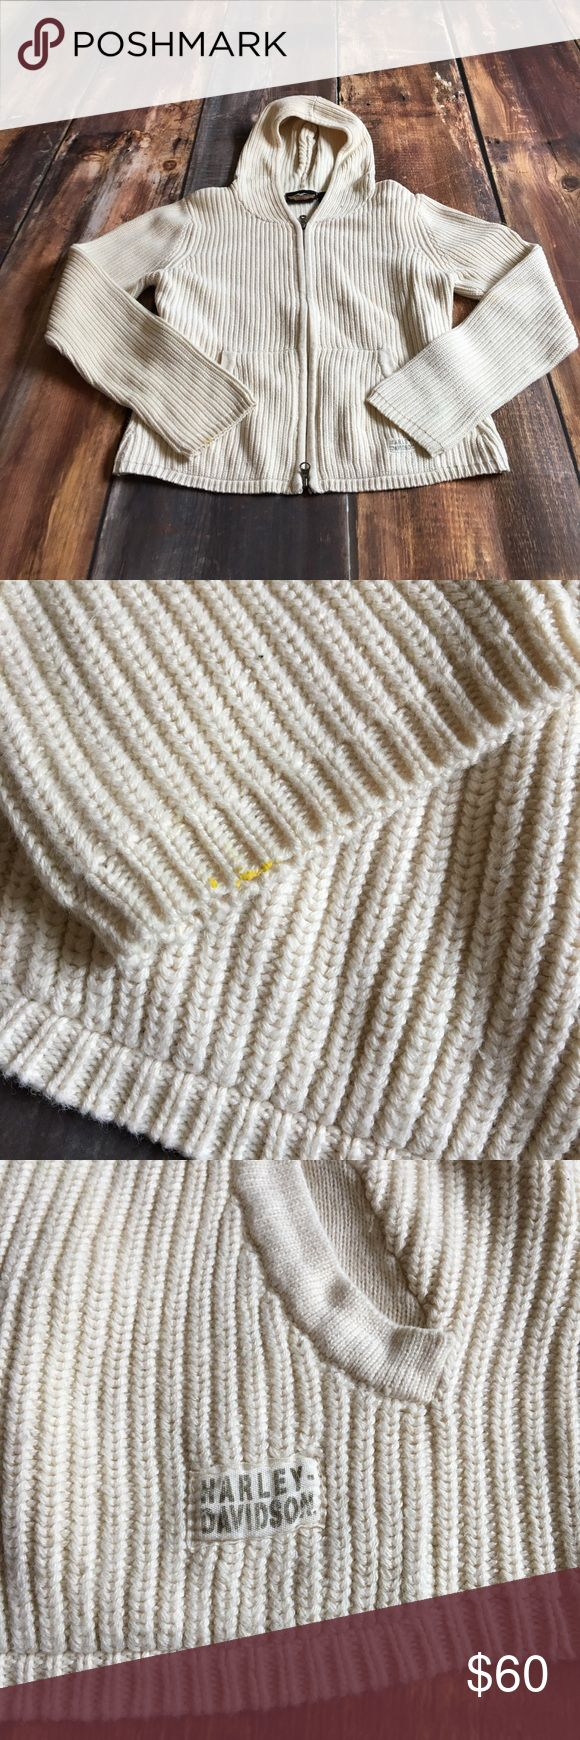 Harley Davidson Beige Zip Up Sweatshirt One small stain pictured but other than that it's in excellent condition No rips or holes From a pet free/smoke free home Harley-Davidson Tops Sweatshirts & Hoodies